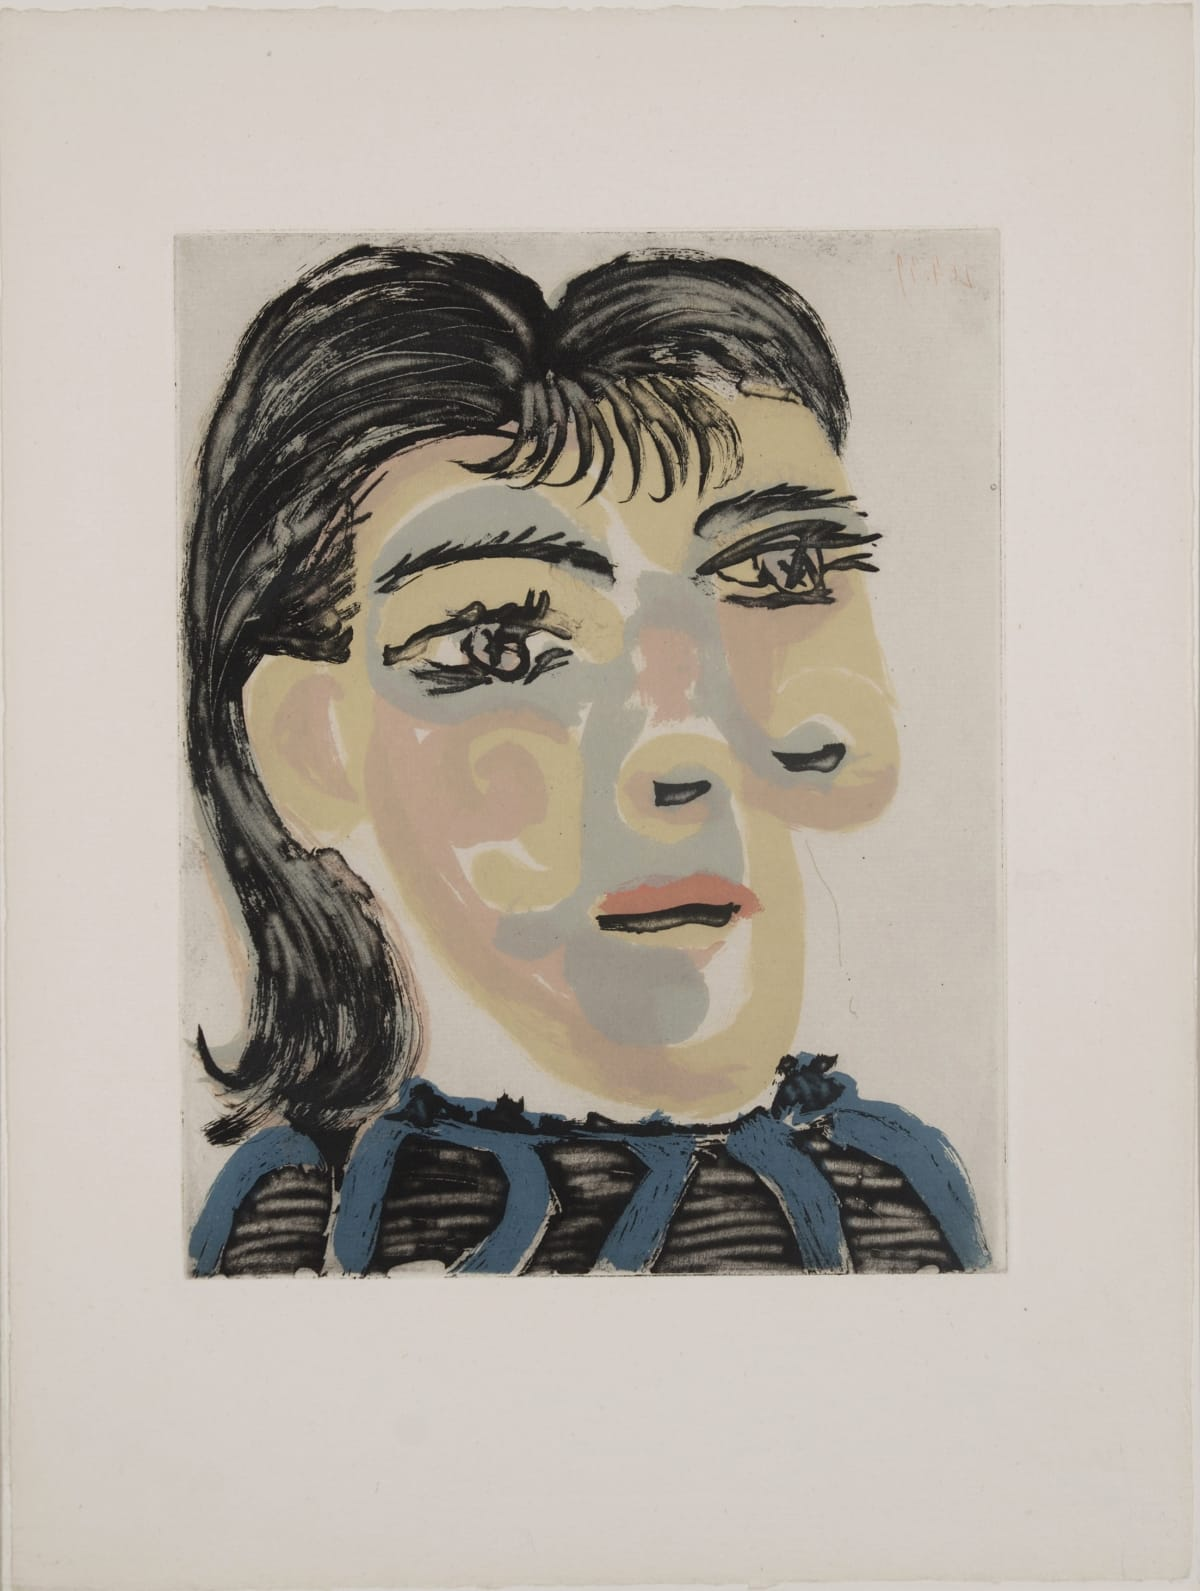 Pablo Picasso Tête de femme n° 2 (Portrait of Dora Maar), 1939 Aquatint, scraper and drypoint in four colors Plate size: 29,9 x 23,7 / 11,8 x 9,3 in. Aquatint, scraper and drypoint in four colors on four copper plates 104 prints on Montval paper. These proofs are neither numbered nor signed.